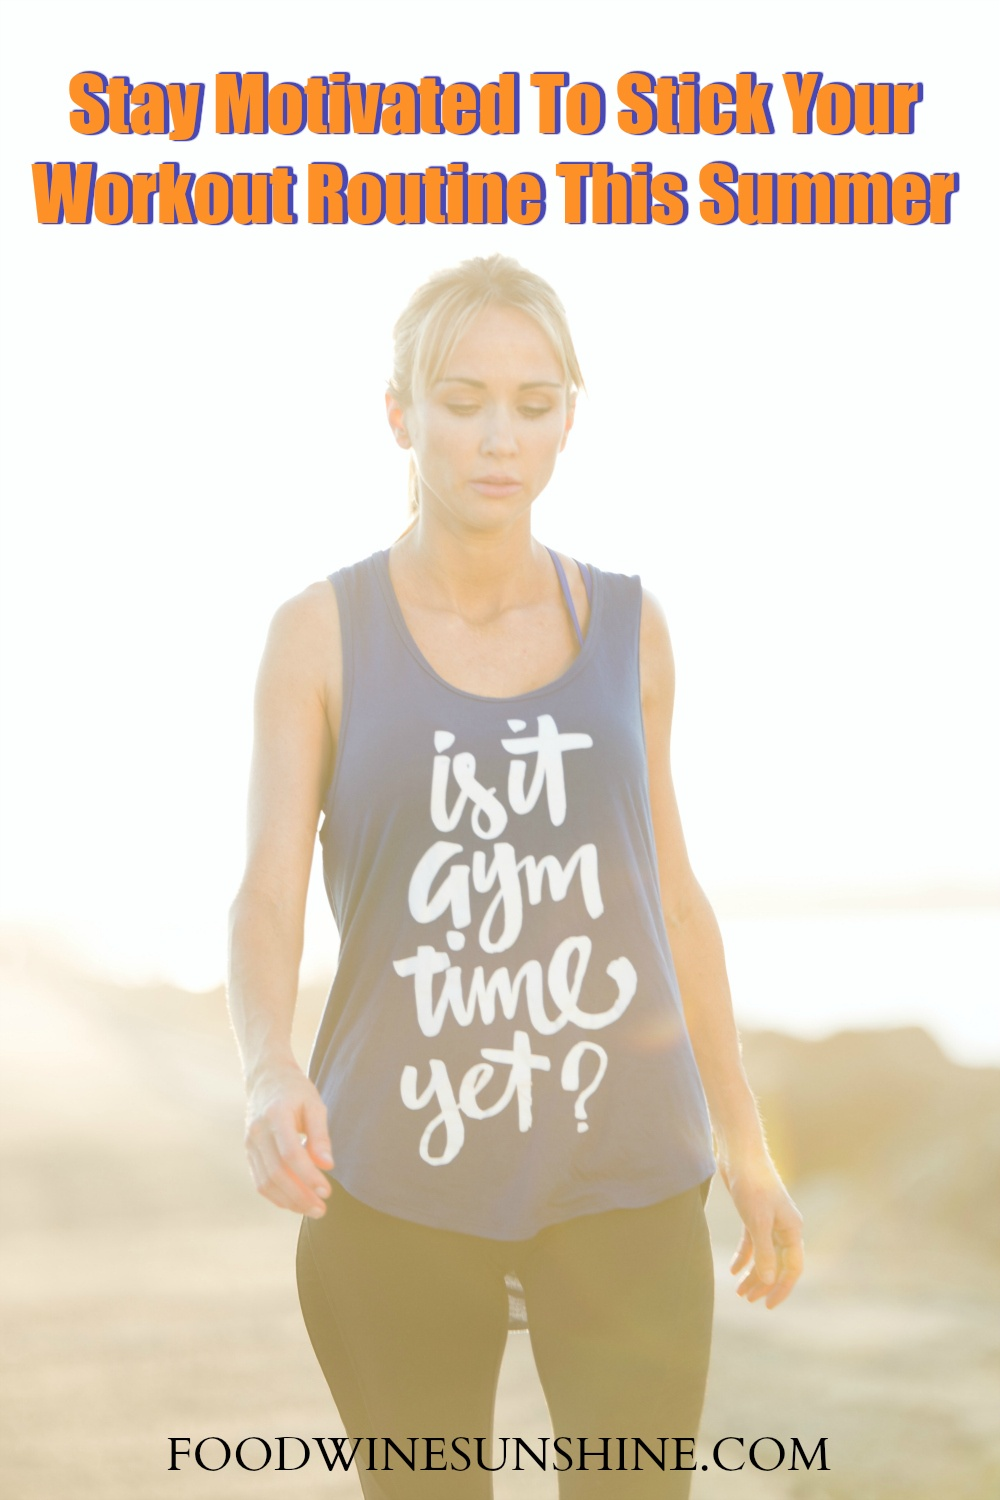 Stay Motivated To Stick Your Workout Routine This Summer